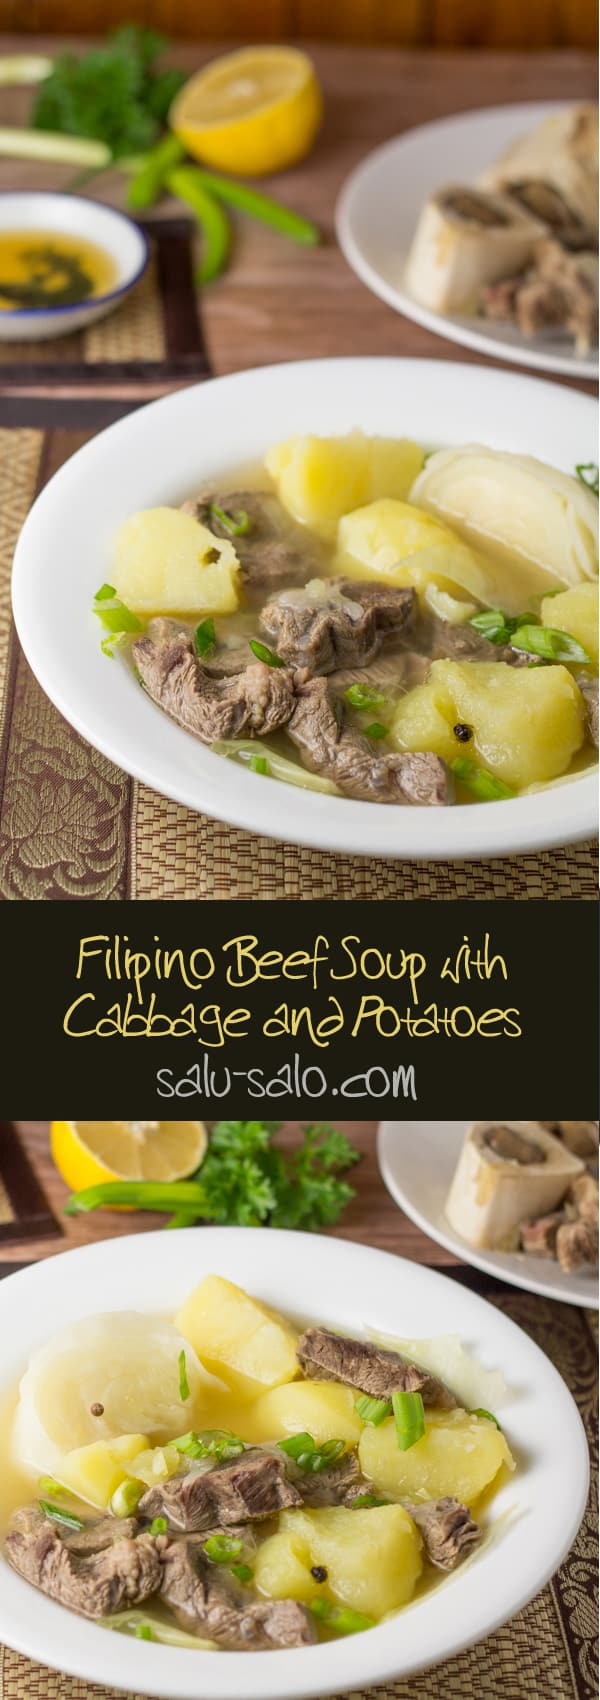 Nilagang Baka (Beef Soup with Cabbage and Potatoes)